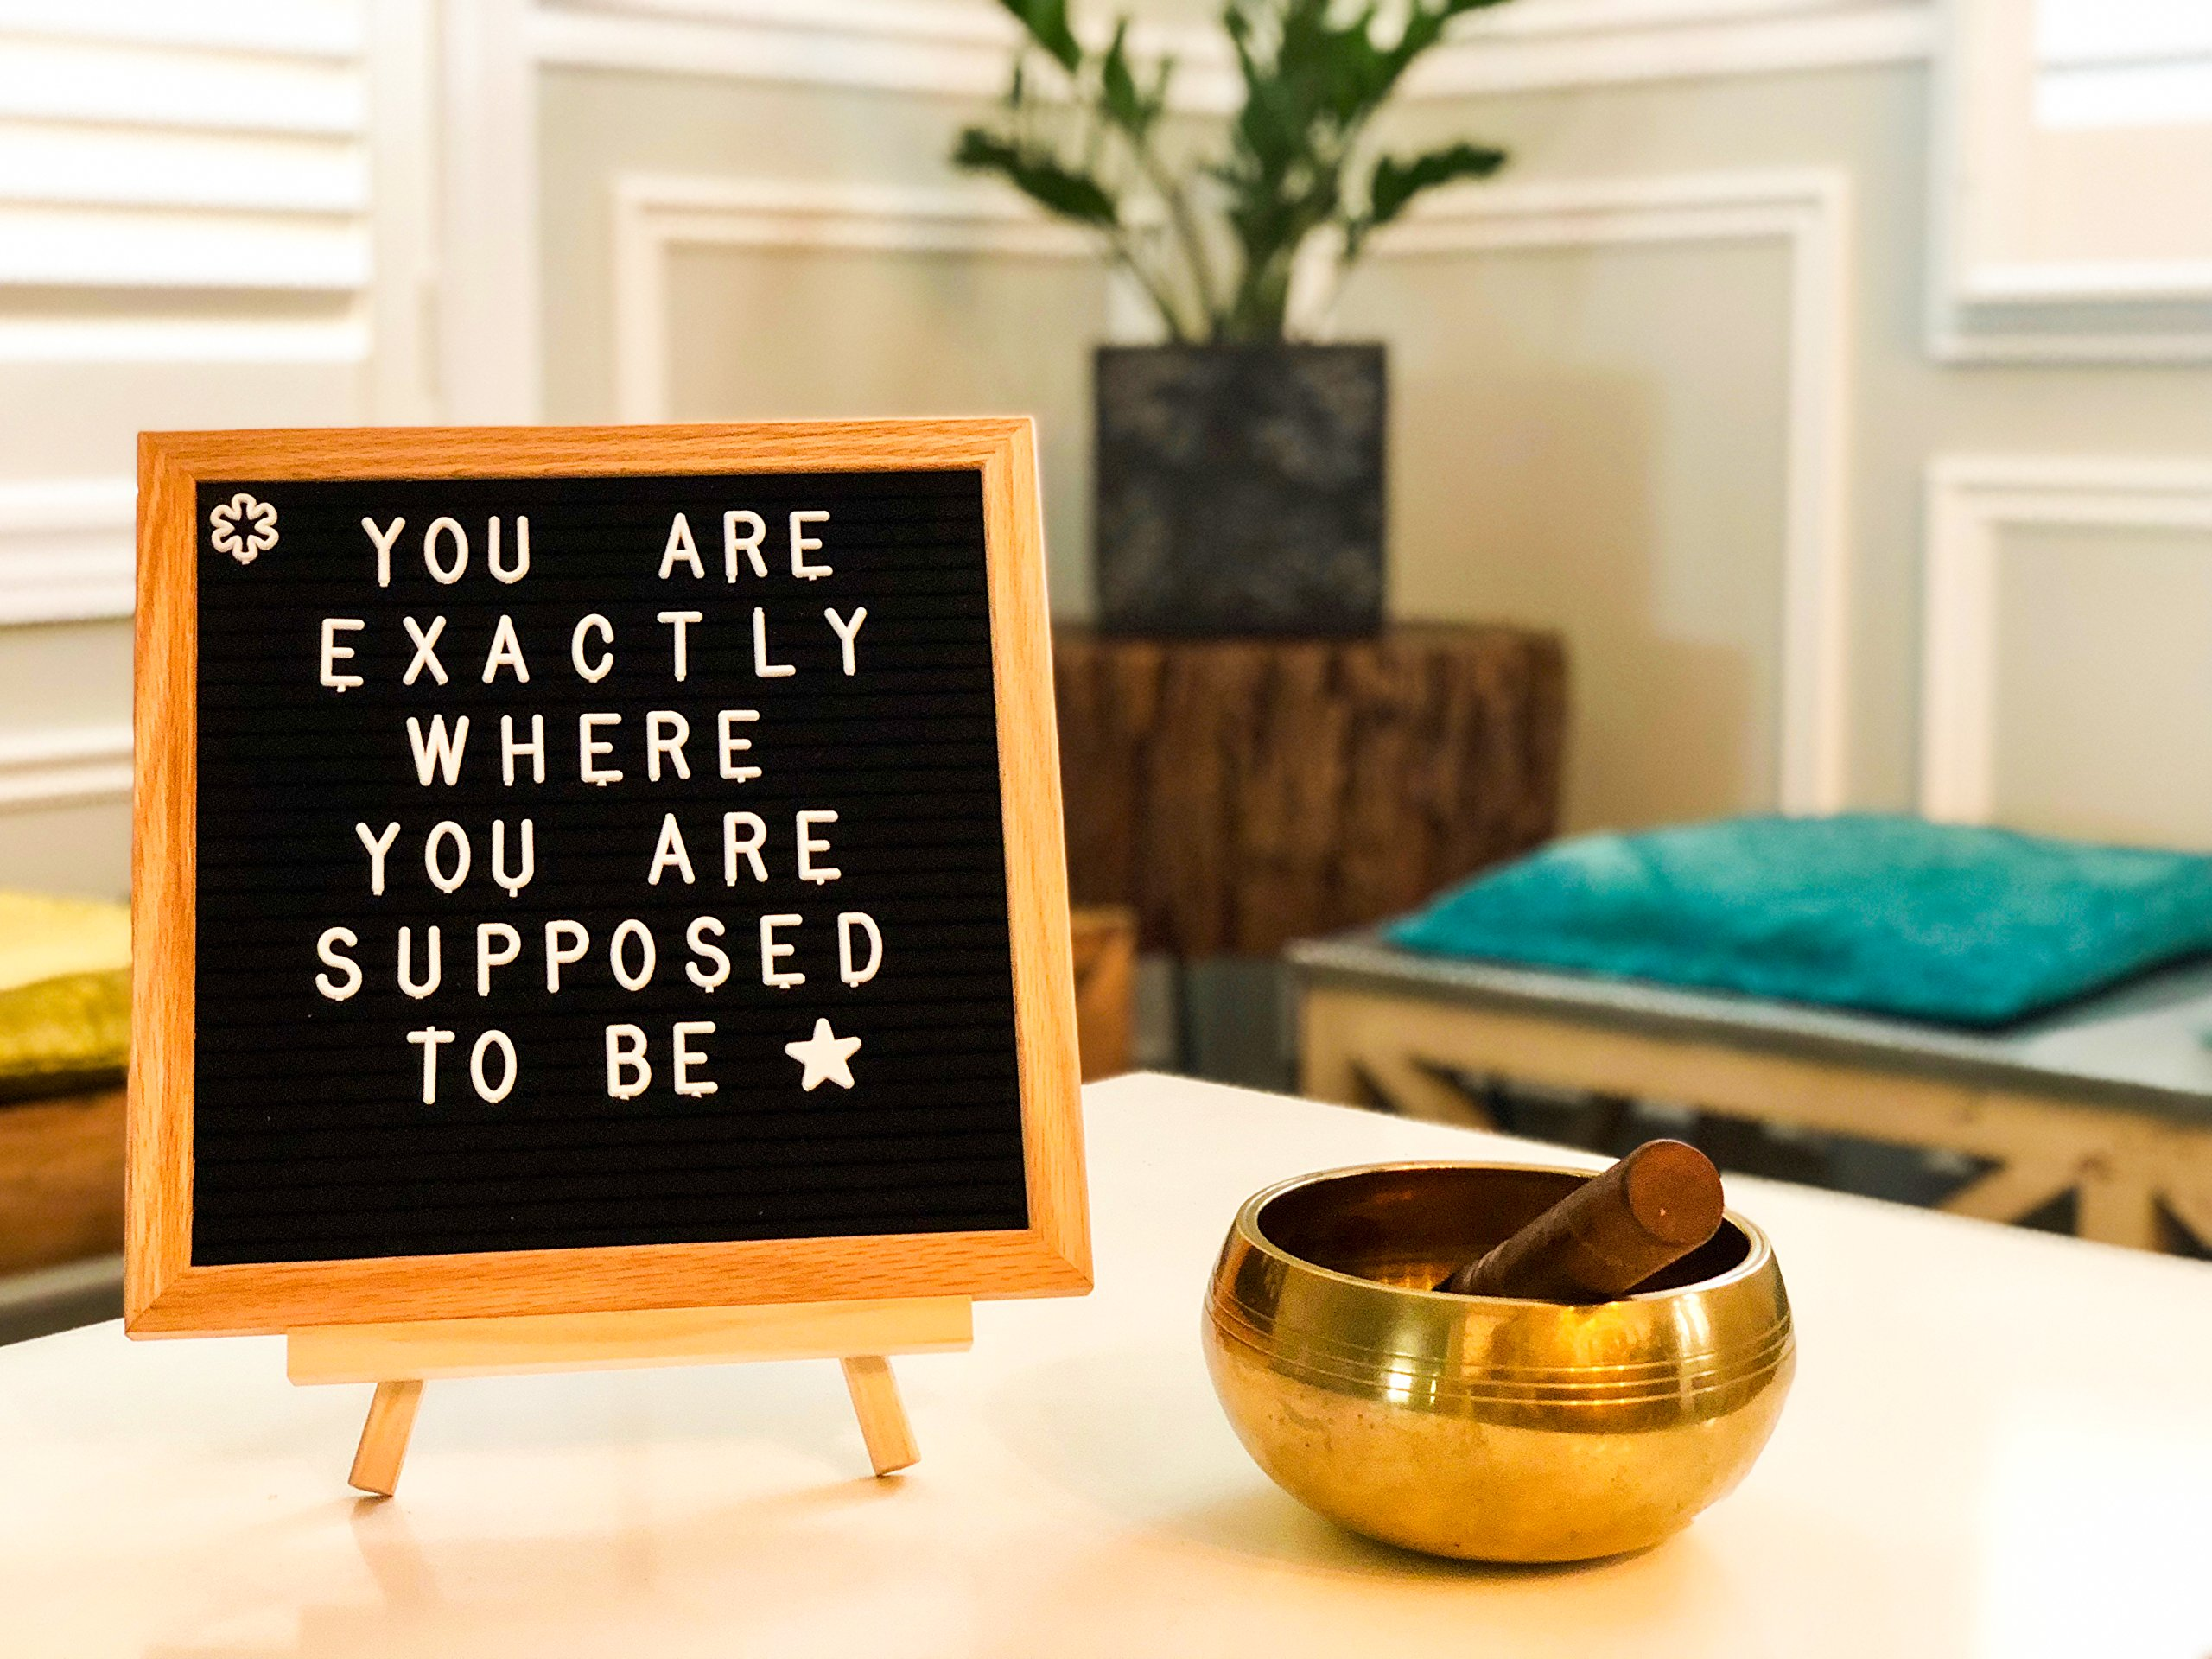 Felt Letter Board with 295 White Detachable Letters + 35 Emojis Framed in a Rustic 10x10 inches Oak Wood. Comes with: Free Oak Tripod Stand, Scissors, and Canvas Bag. by Arlington Enterprise (Image #4)